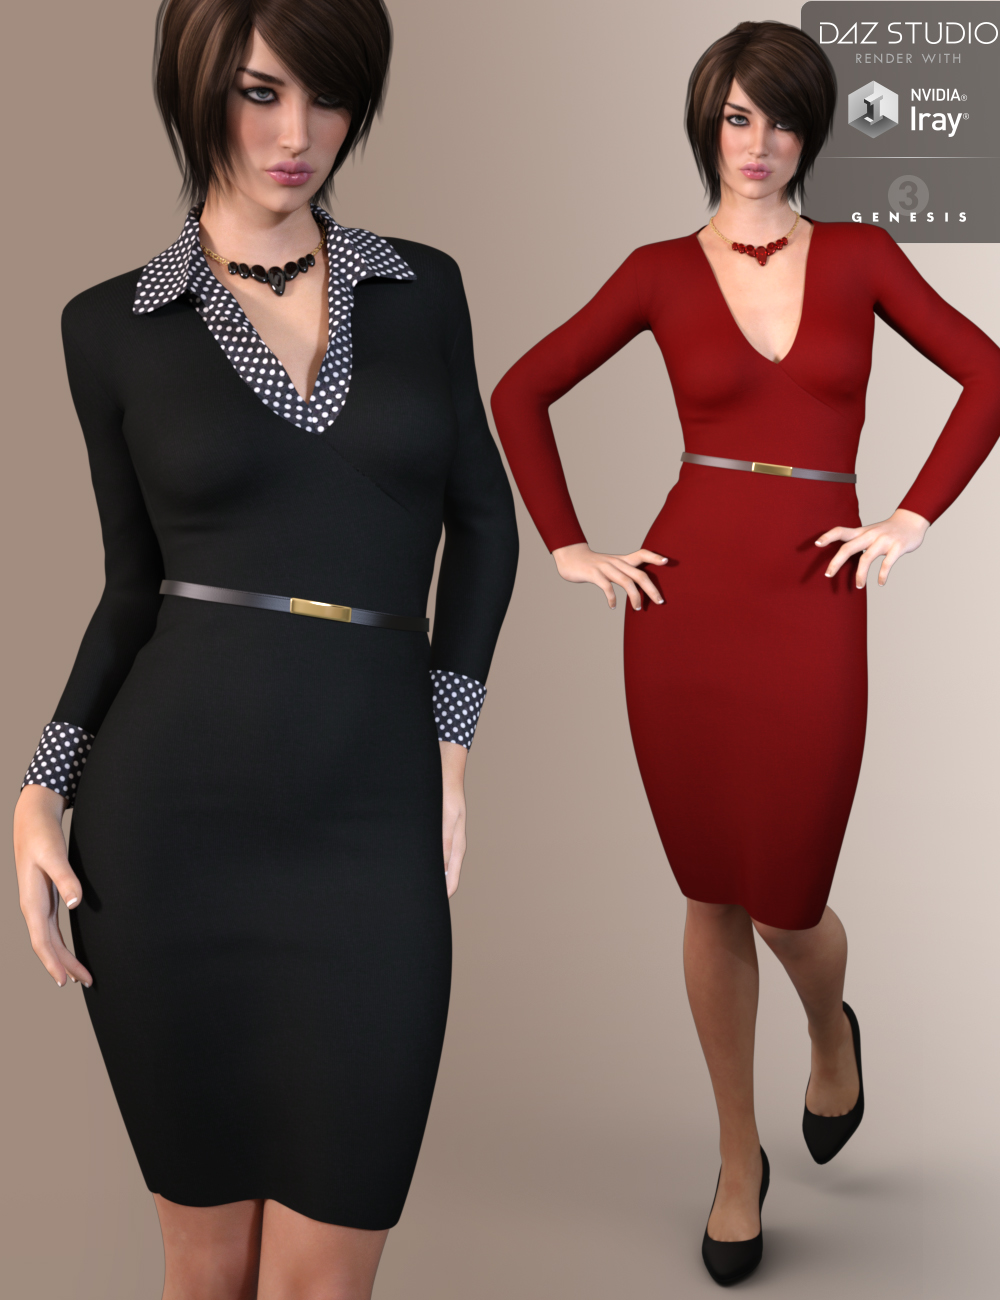 9 To 5 Dress Outfit for Genesis 3 Female(s) by: Nikisatez, 3D Models by Daz 3D